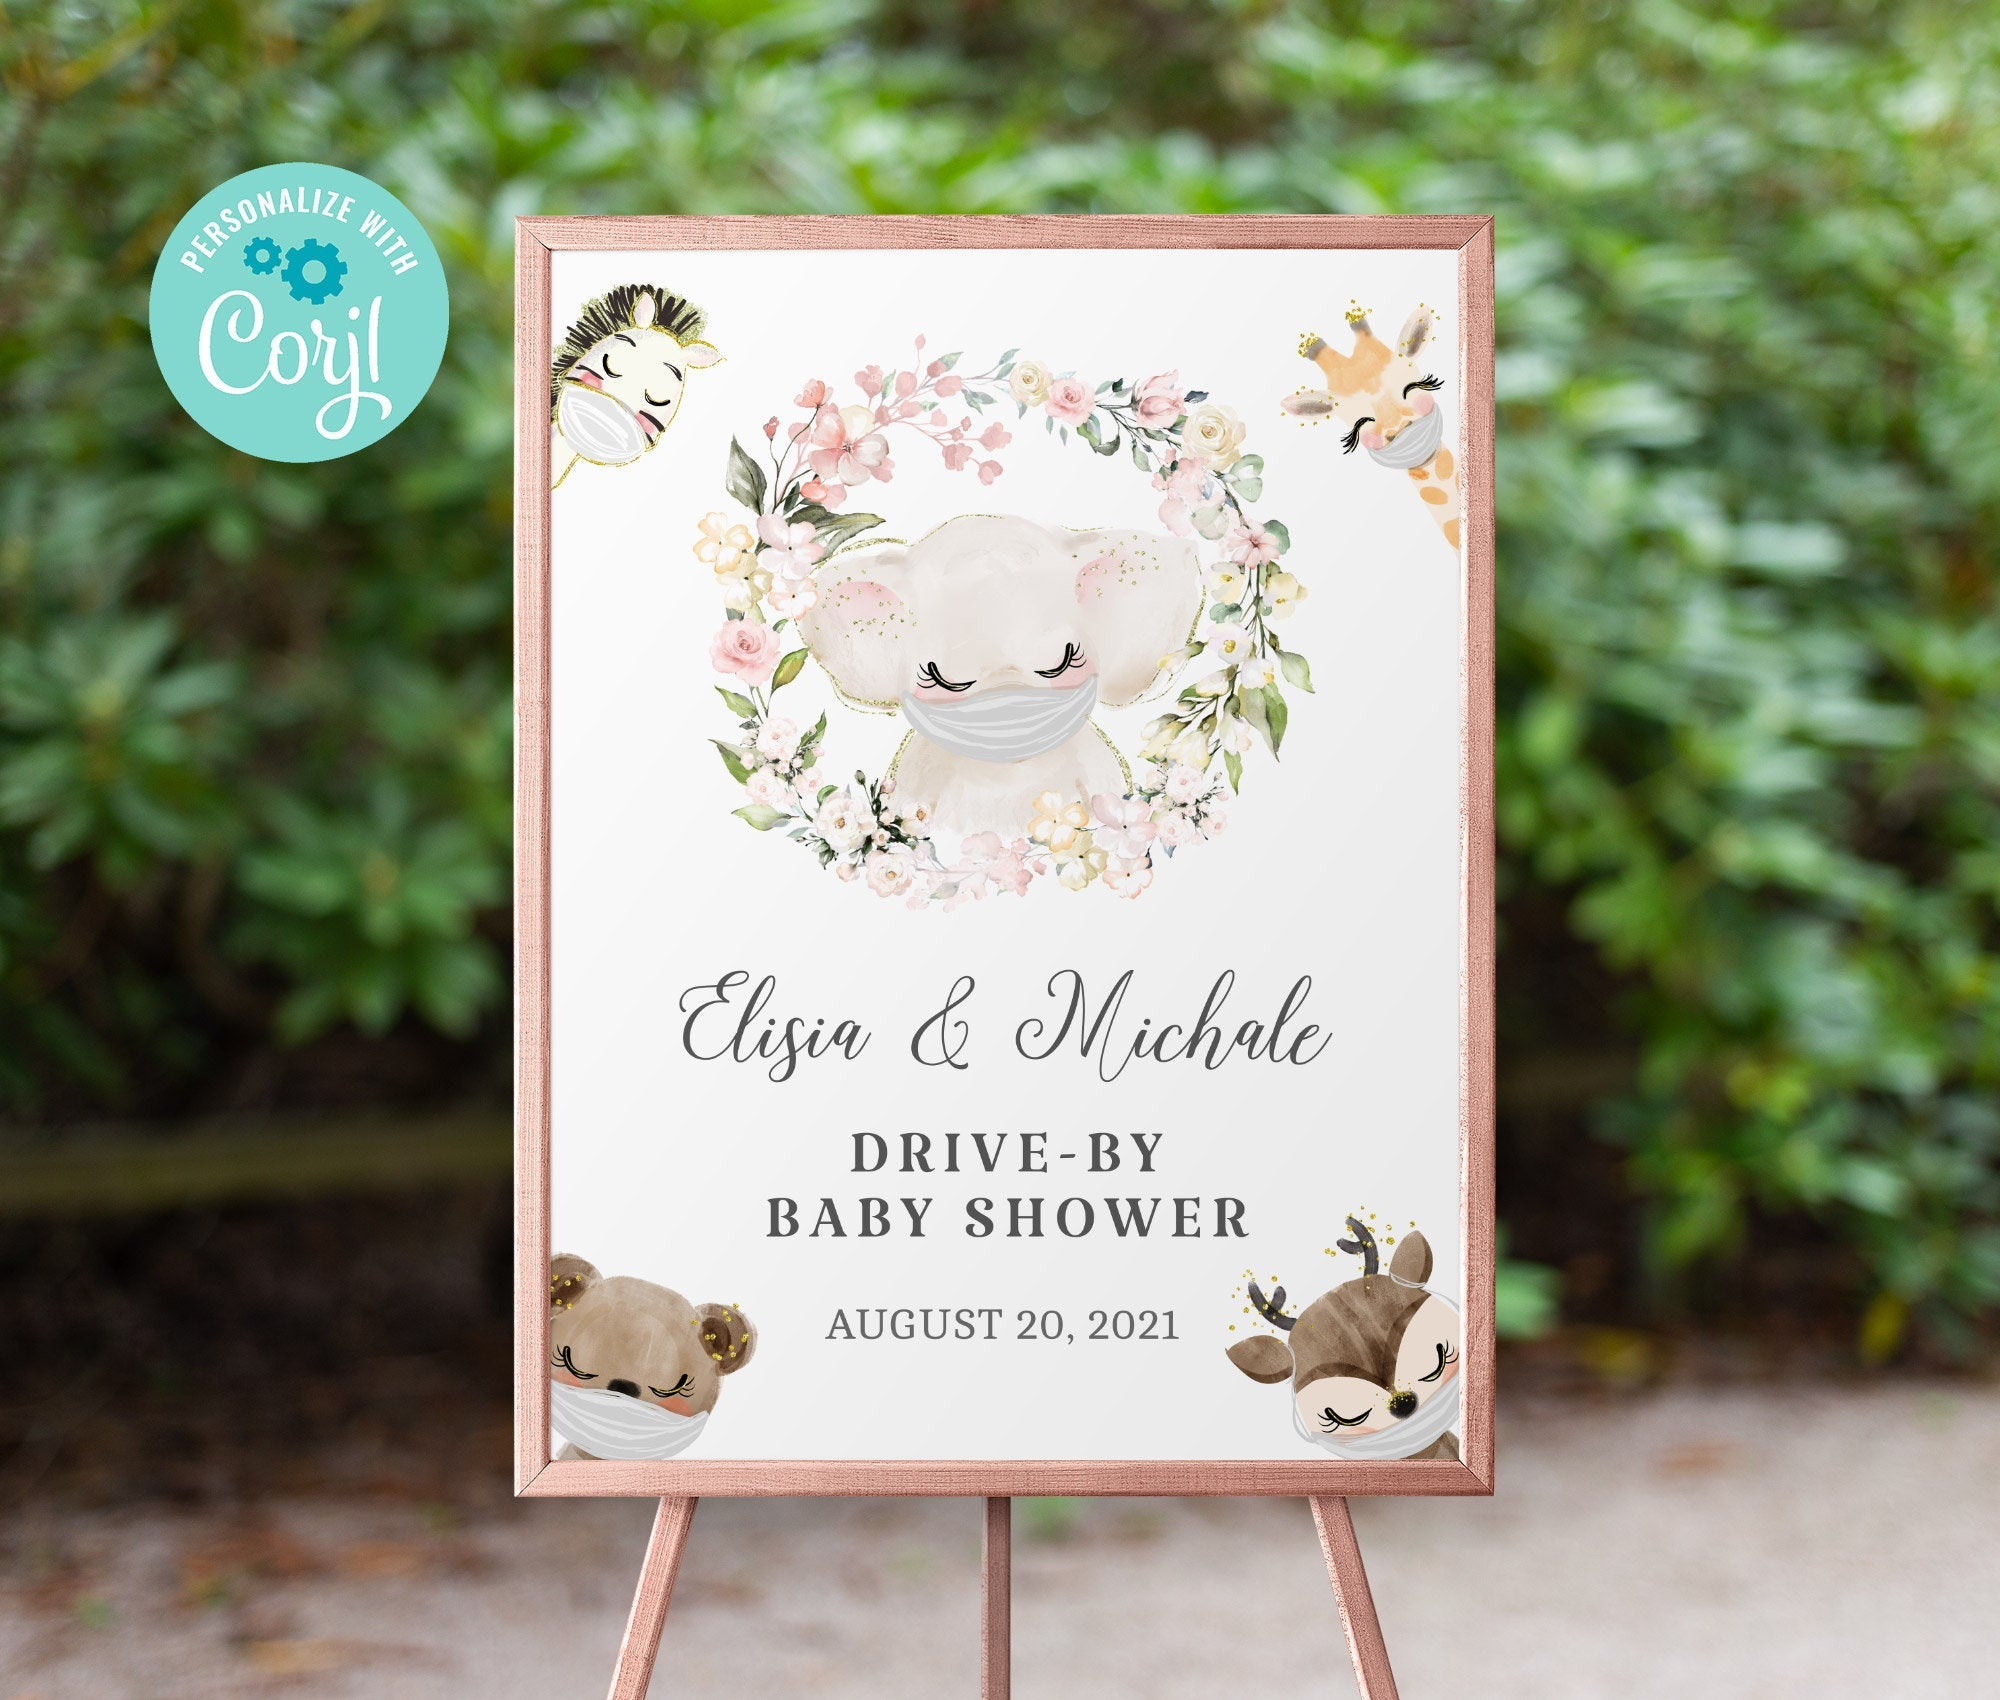 Drive By Baby Shower Welcome Sign Printable •  Elephant Editable Sign • Quarantine Baby Animals • Social Distancing Party • Instant BS3601